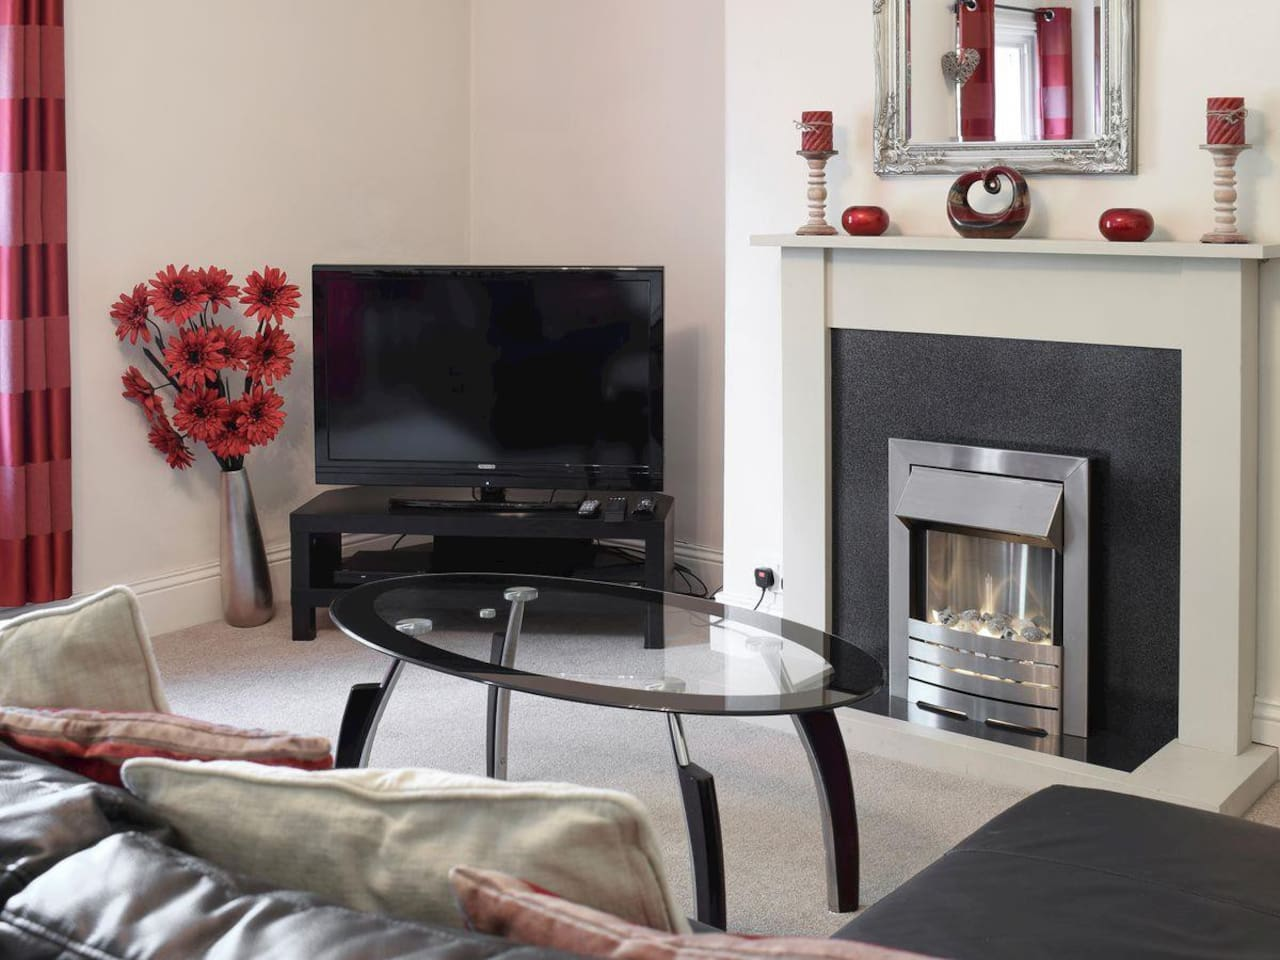 Lounge with gas central heating and electric fire